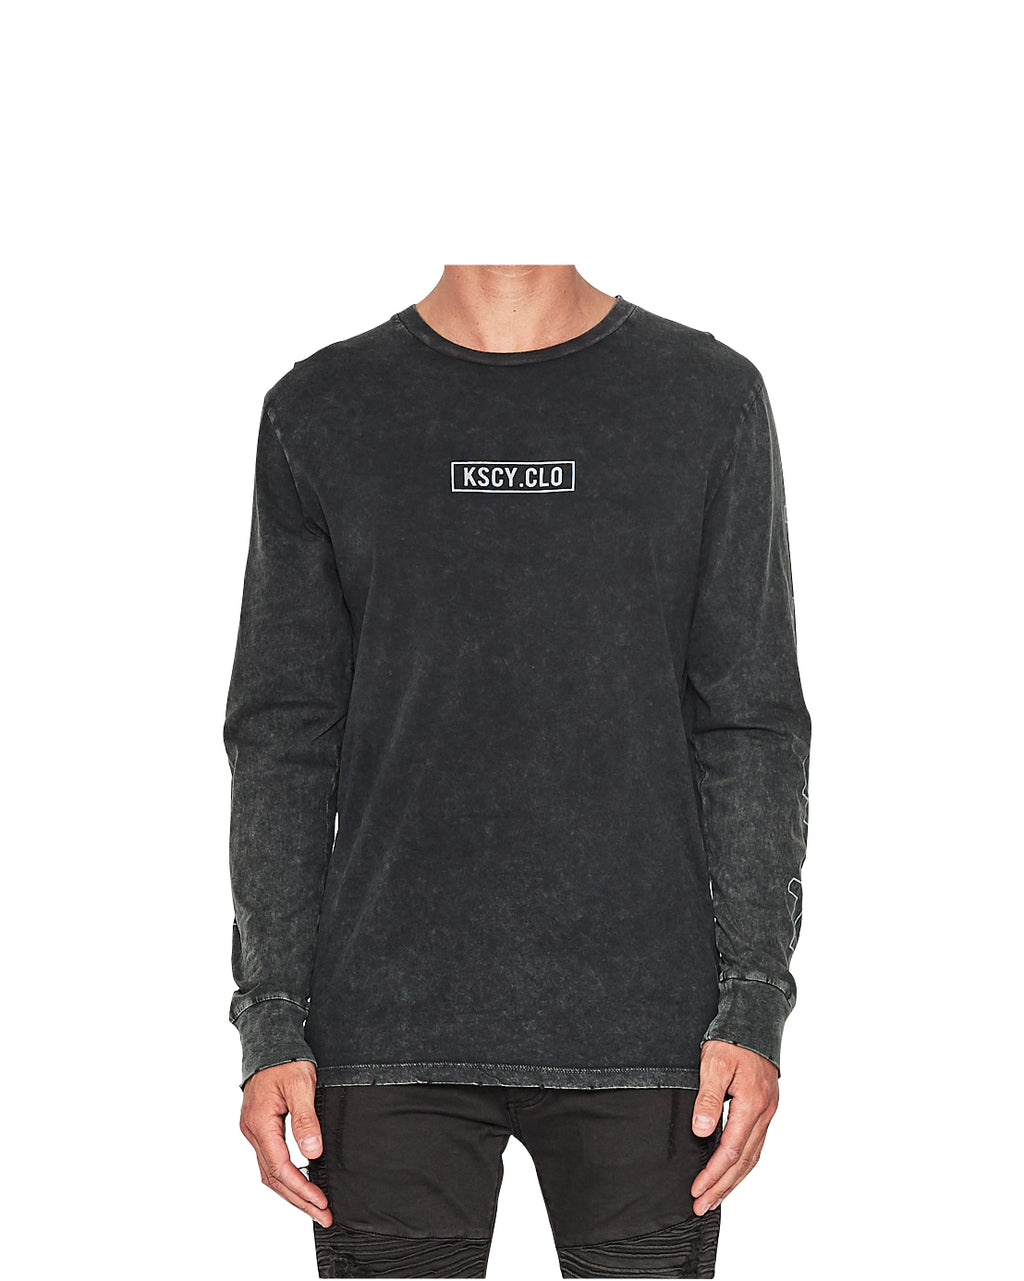 Kiss Chacey - Surviver Long Sleeve Tee - Metal Black